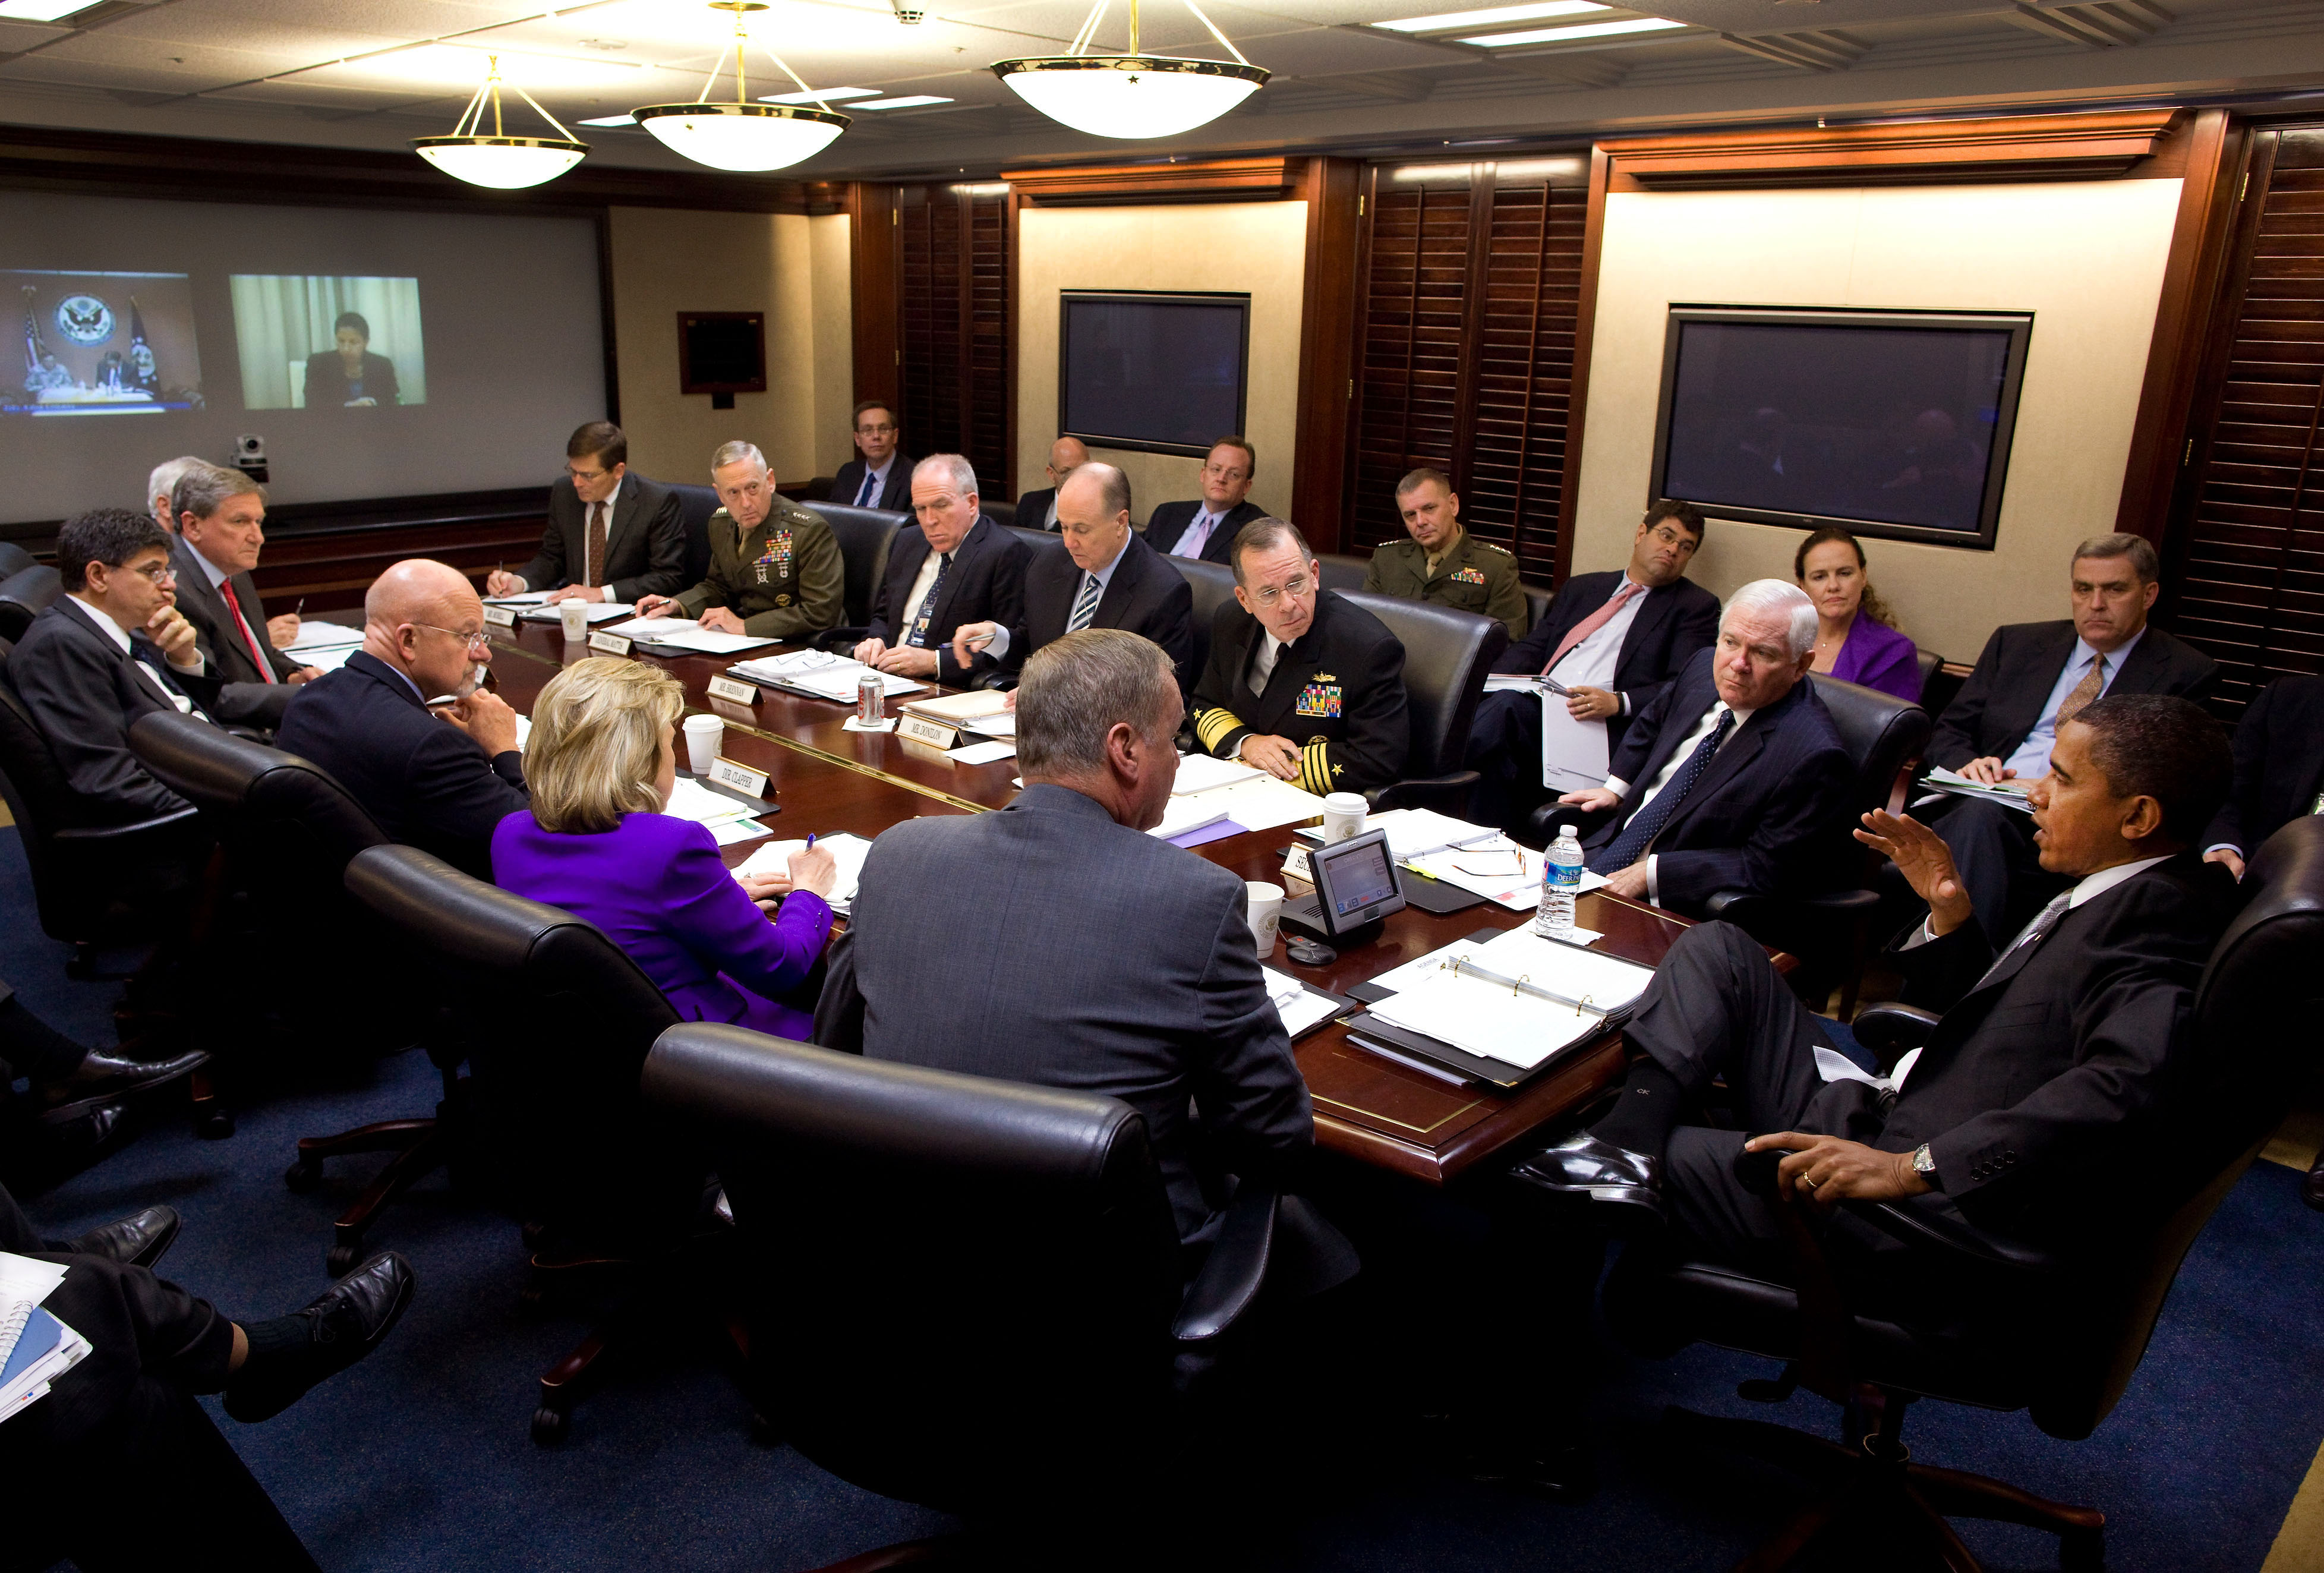 The President Meets with His National Security Team on Afghanistan